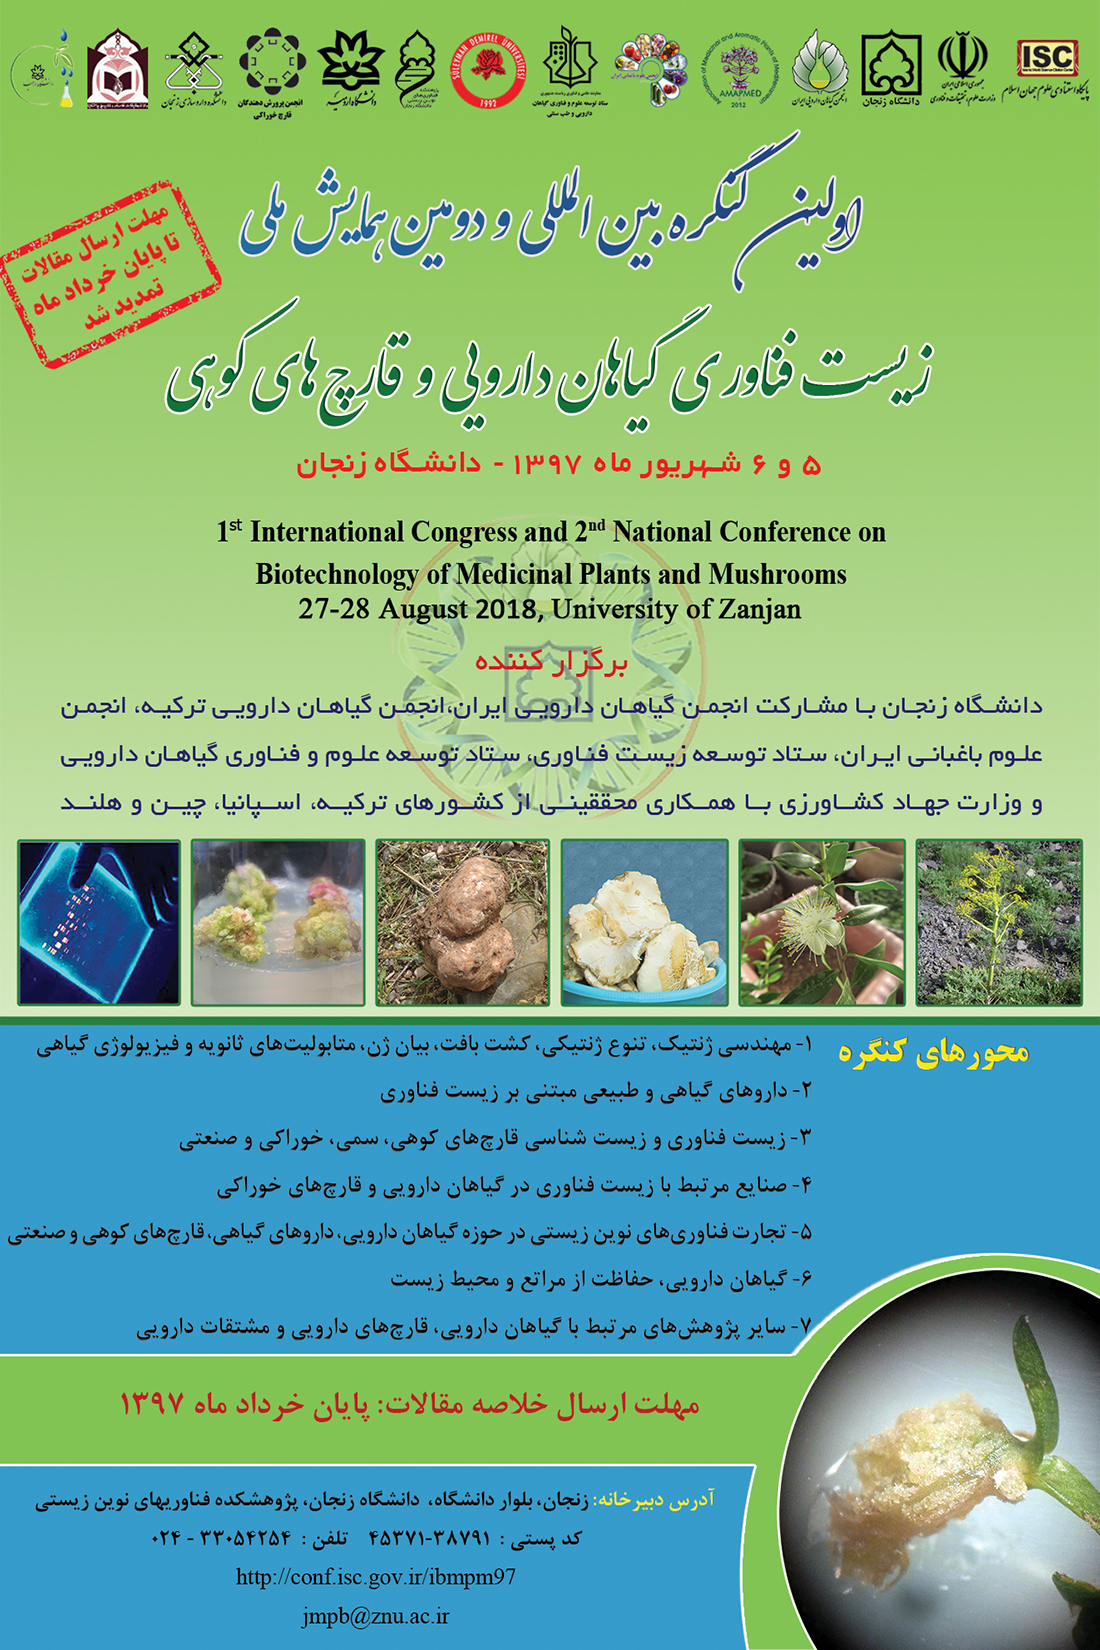 Iran's 1st International Congress and 2nd National Conference on Biotechnology of Medicinal Plants and Mushrooms